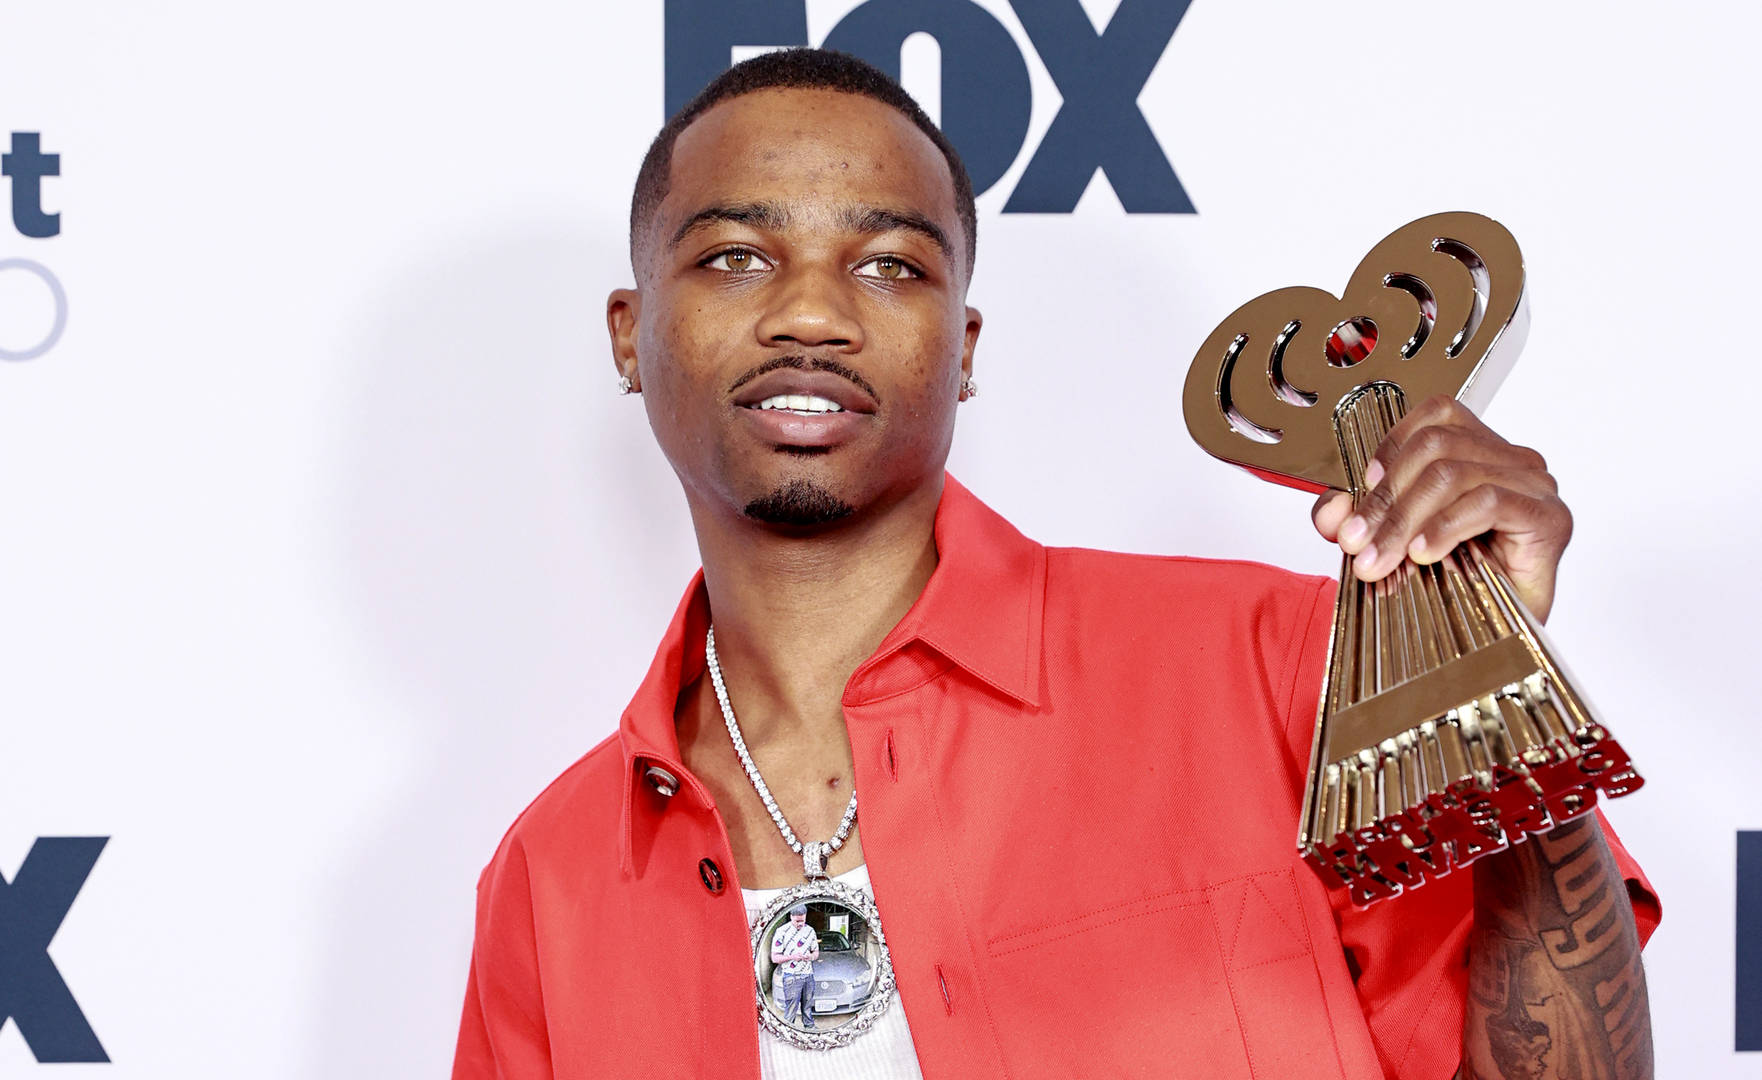 Roddy Ricch, winner of the Hip-Hop Artist of the Year and Best New Hip-Hop Artist awards, attends the 2021 iHeartRadio Music Awards at The Dolby Theatre in Los Angeles, California, which was broadcast live on FOX on May 27, 2021.